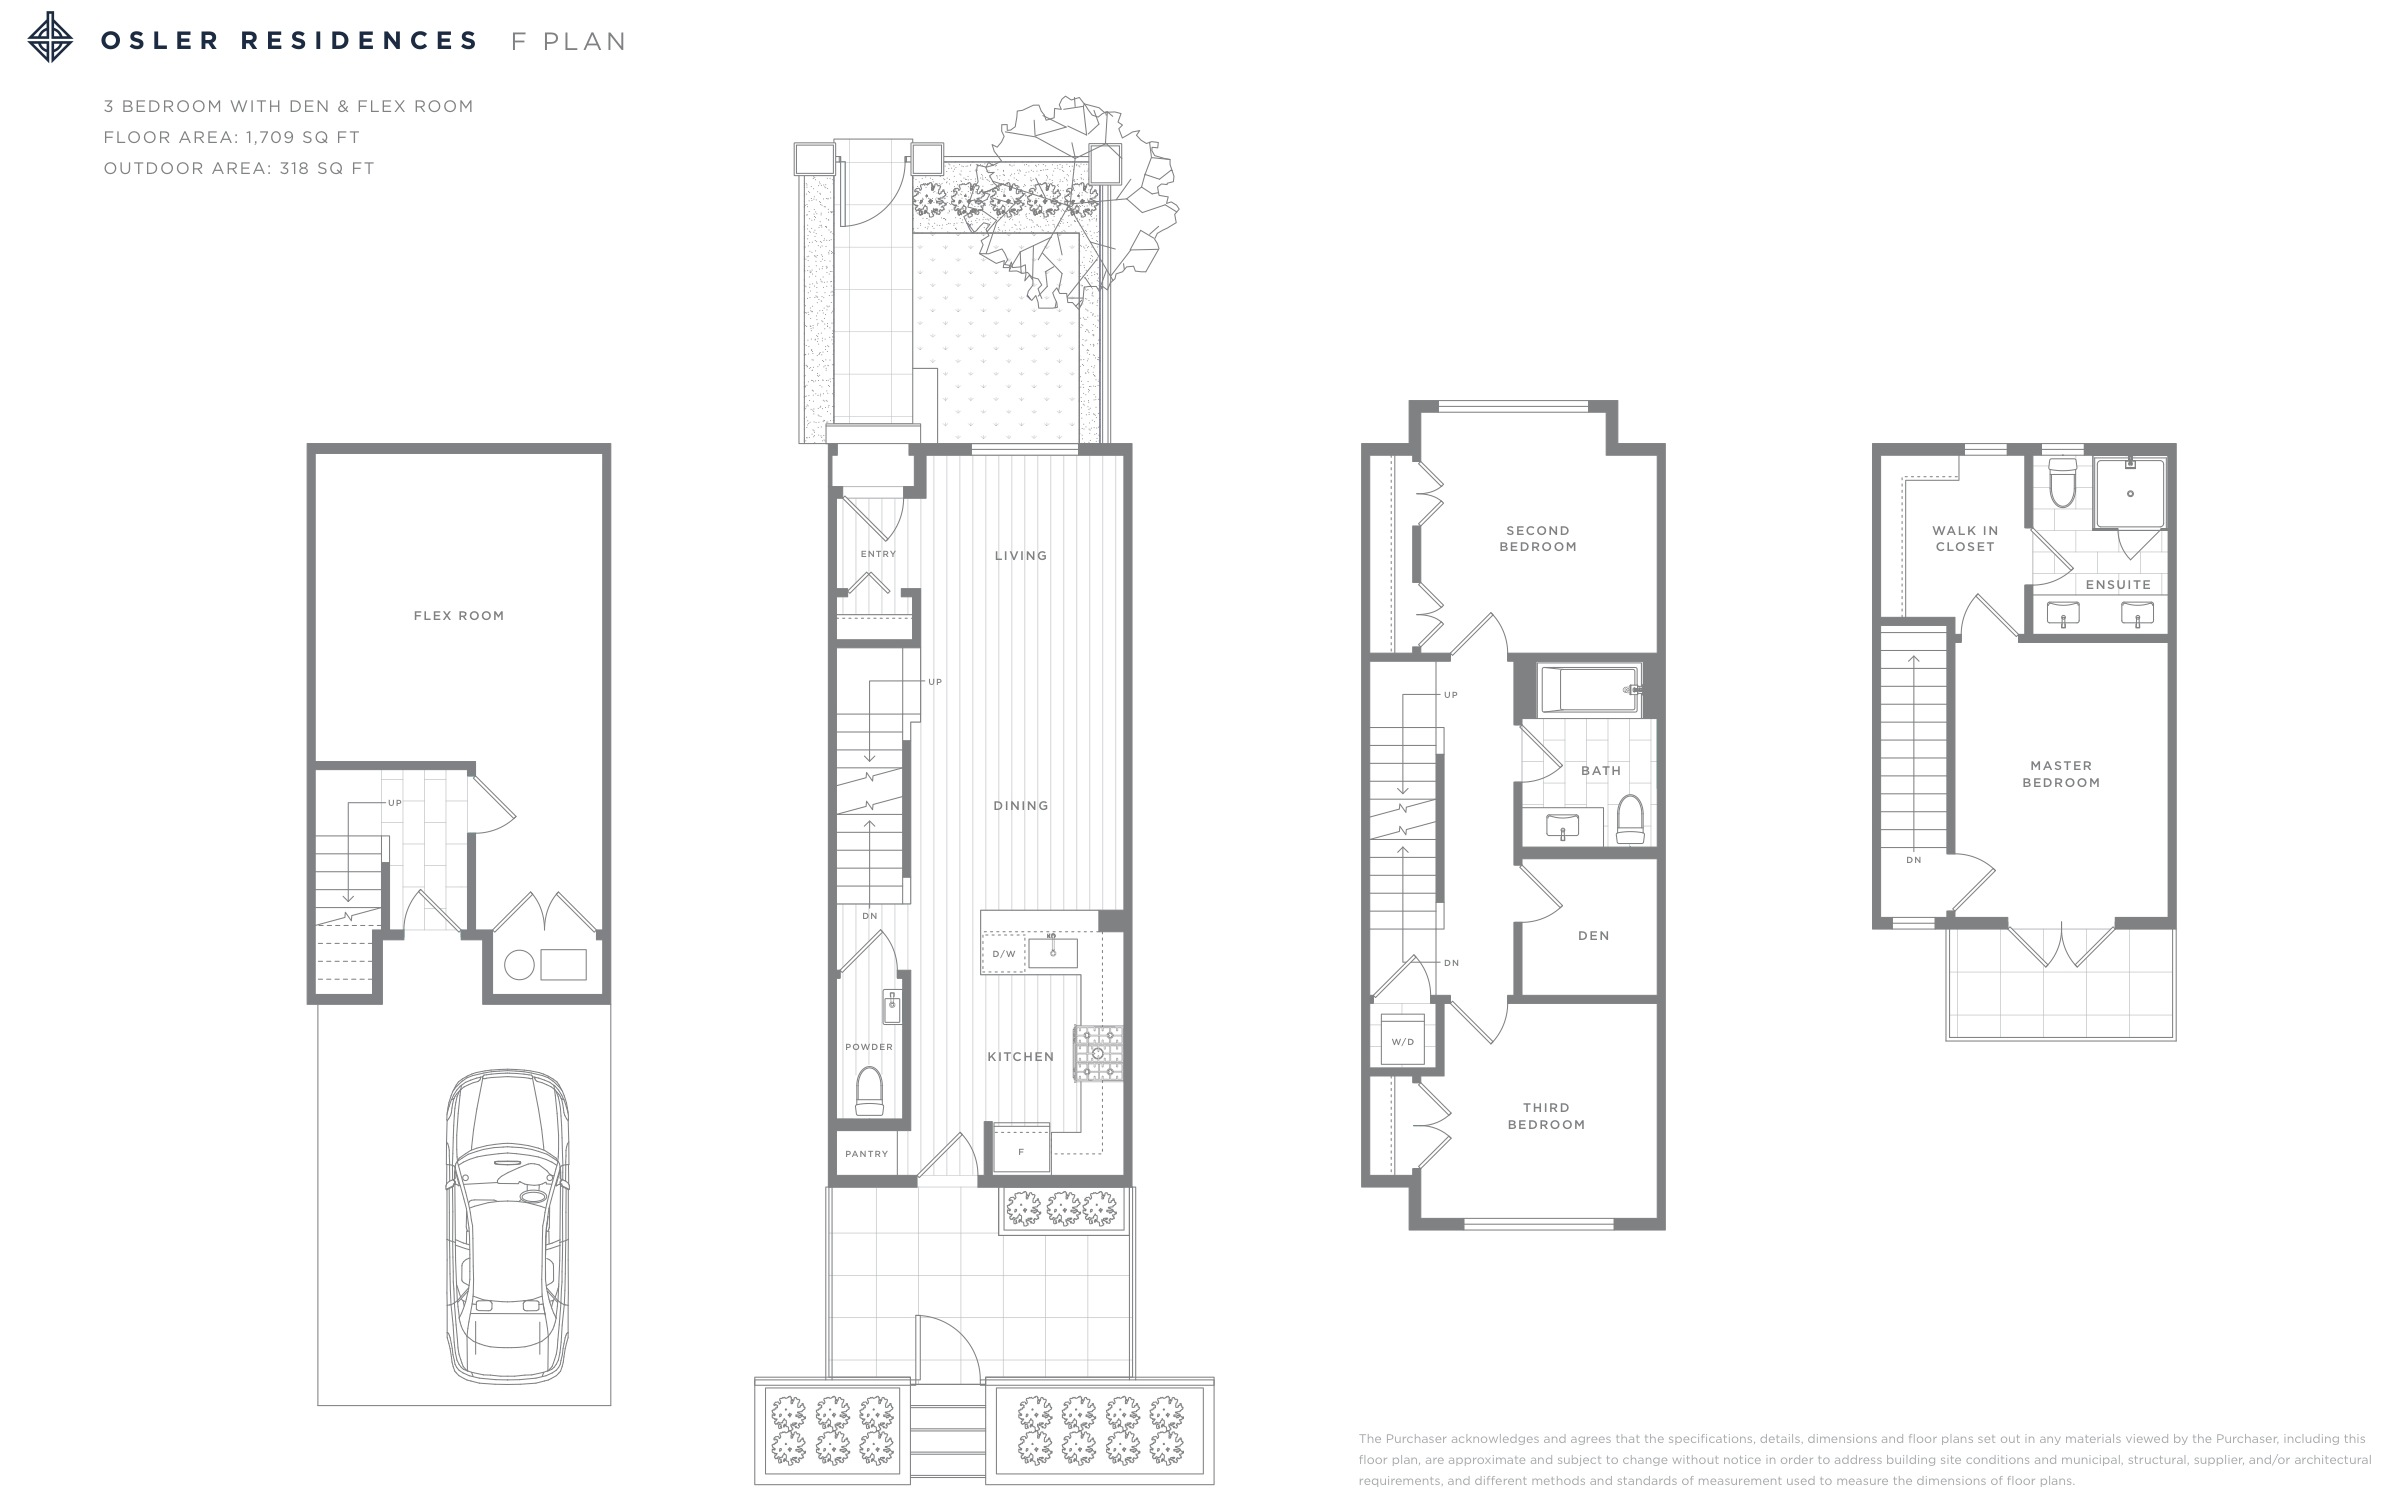 Osler Residences F Plan Floorplan